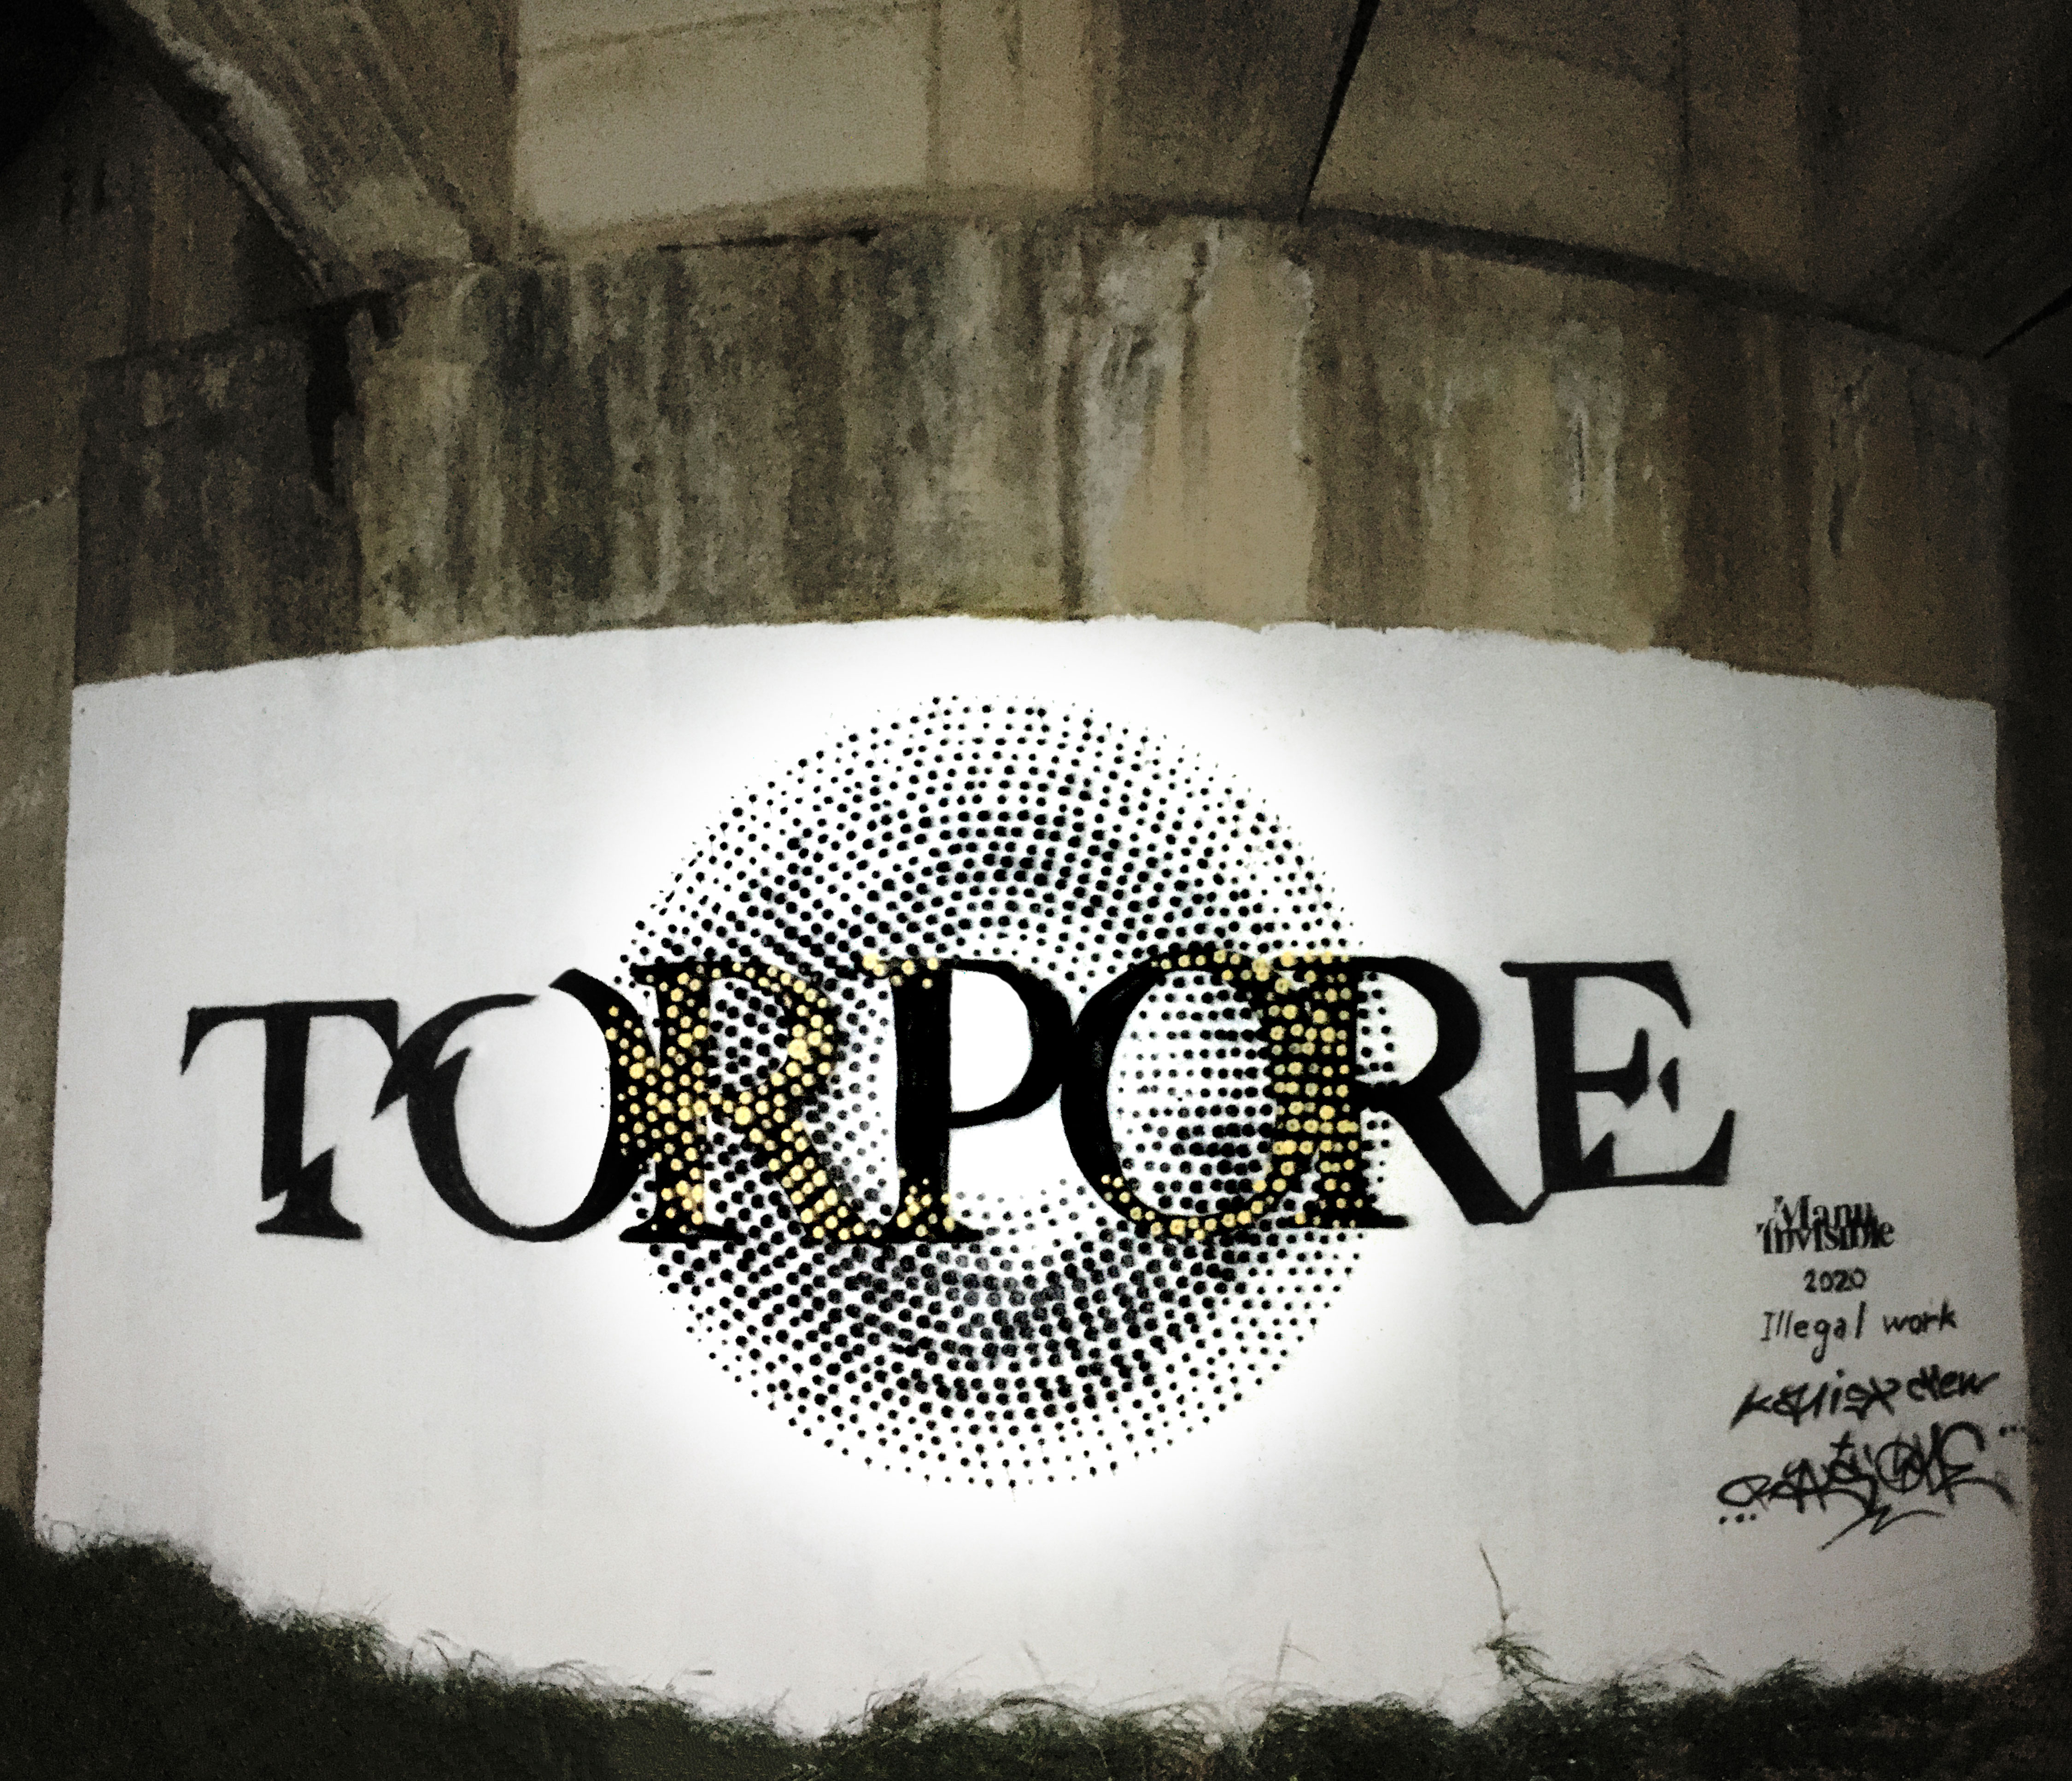 ''Torpore'' Quartz and spray paint on wall 8 x 4 m s.s. 131 Serrenti 2020